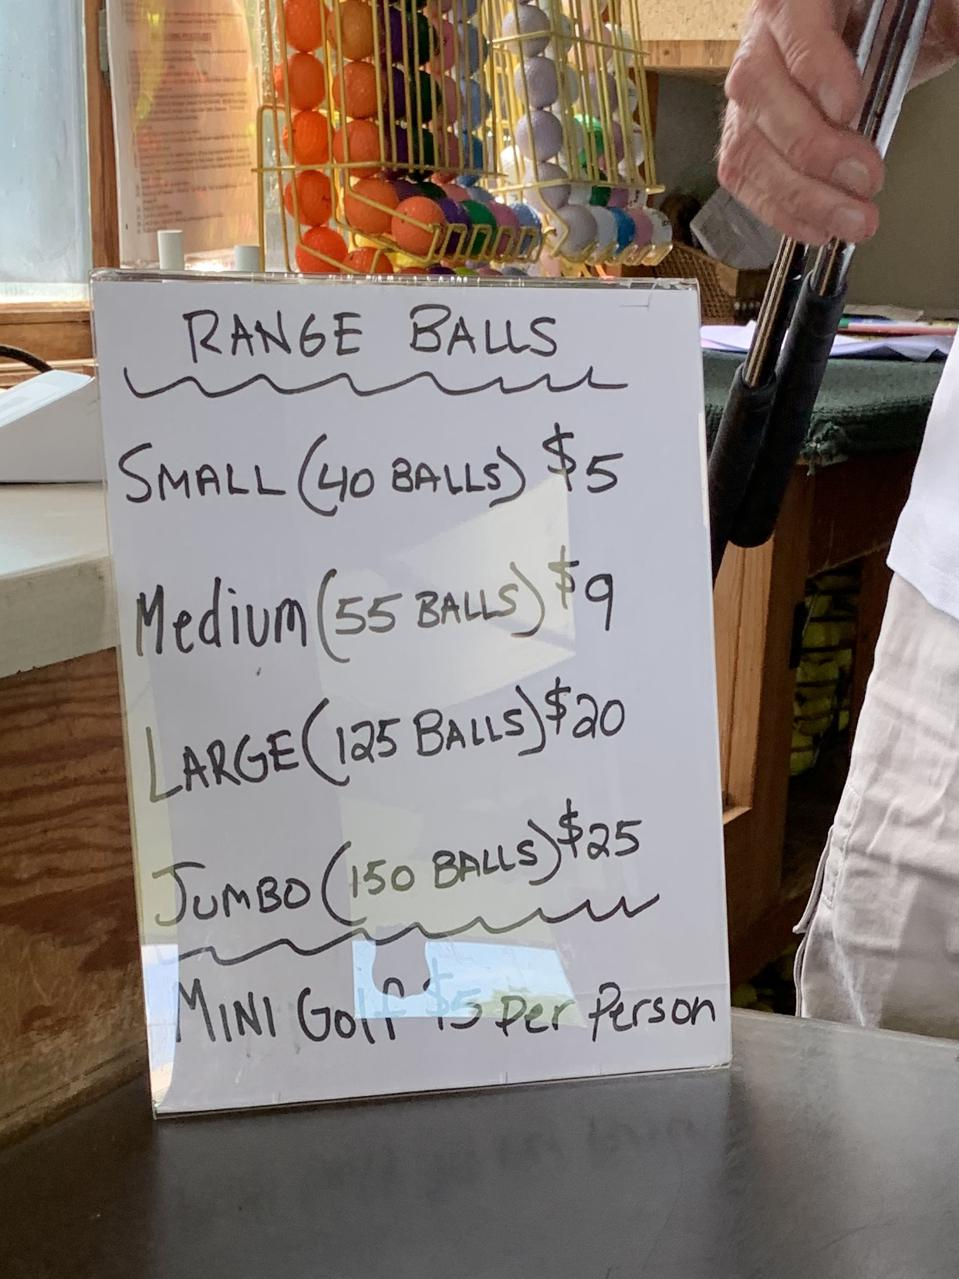 A sign depicts pricing for various-sized buckets of golf balls.